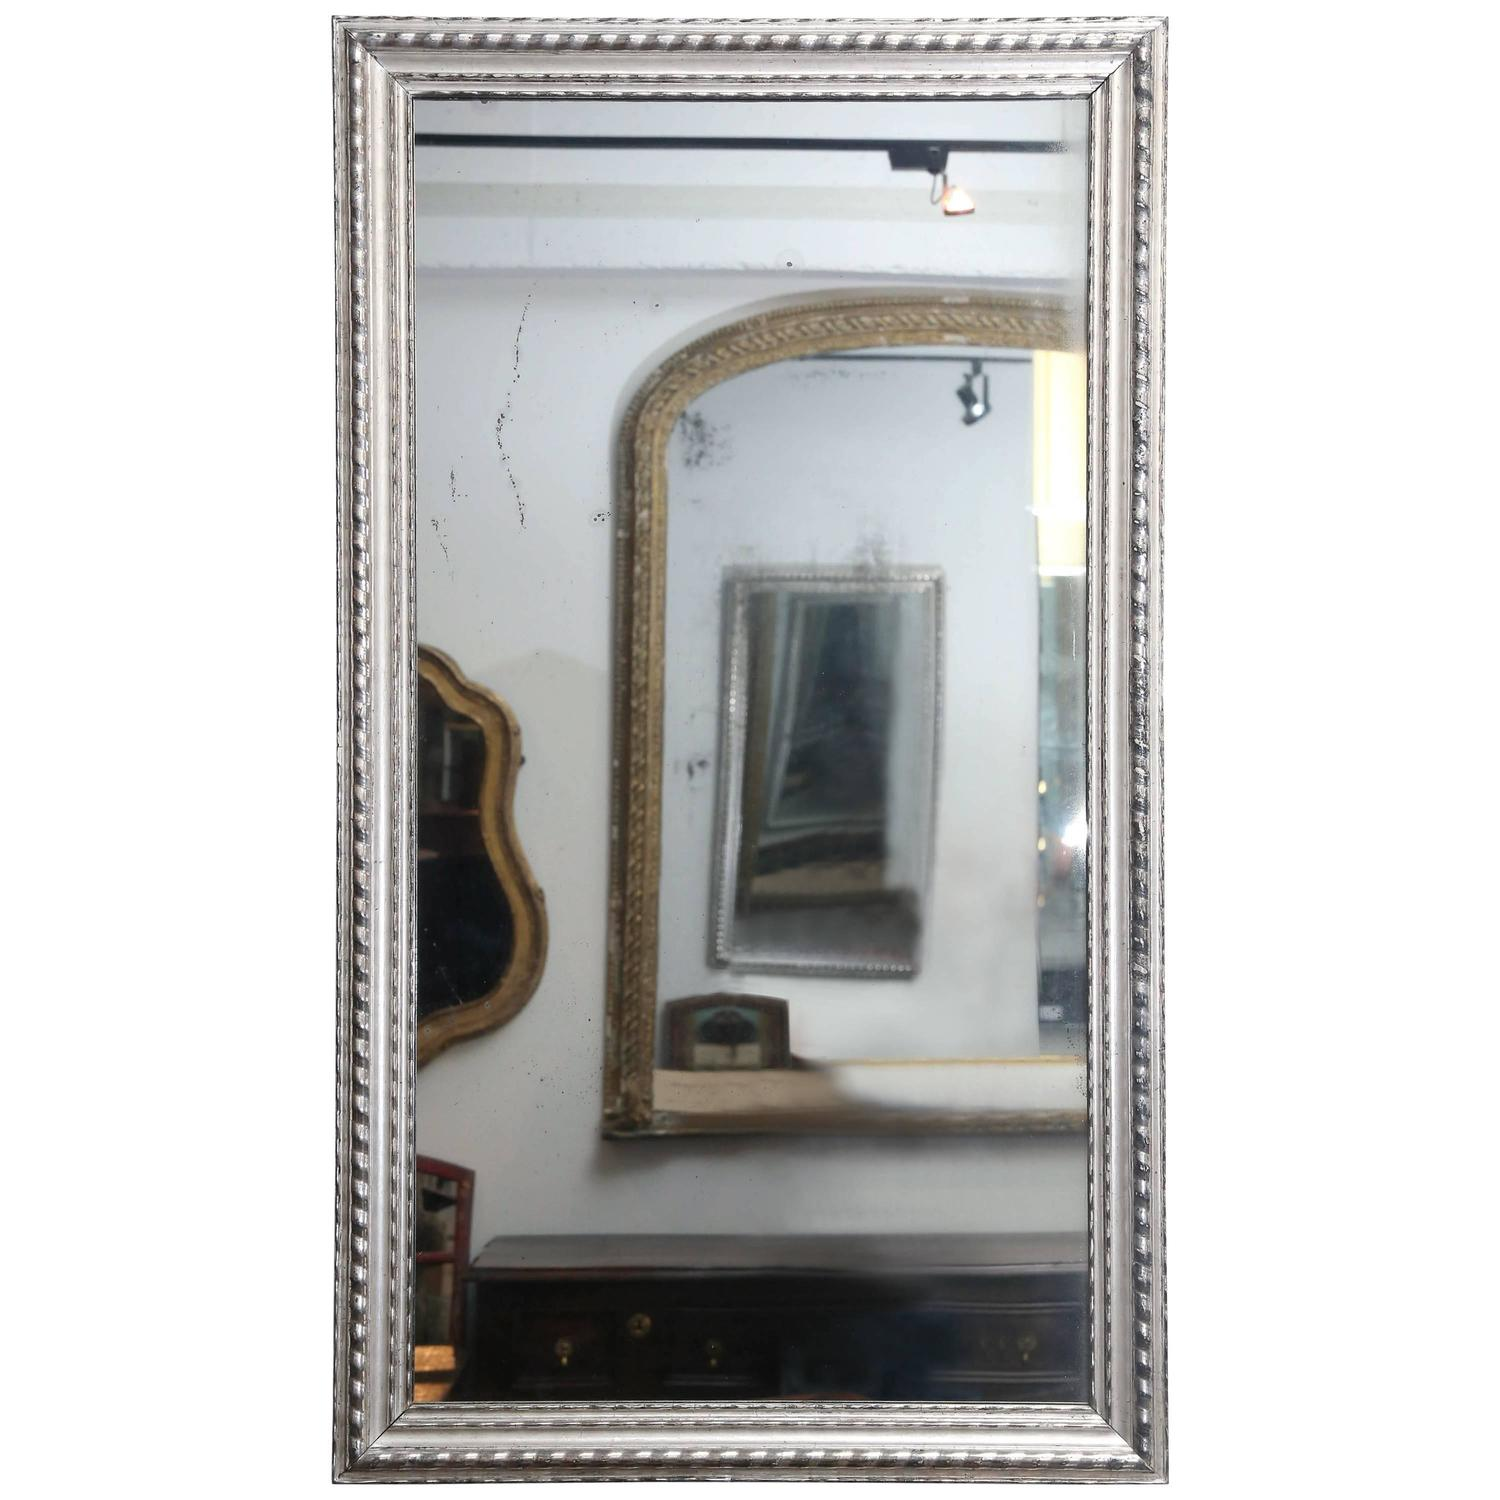 Antique 19th century silver mirror for sale at 1stdibs for Silver mirrors for sale